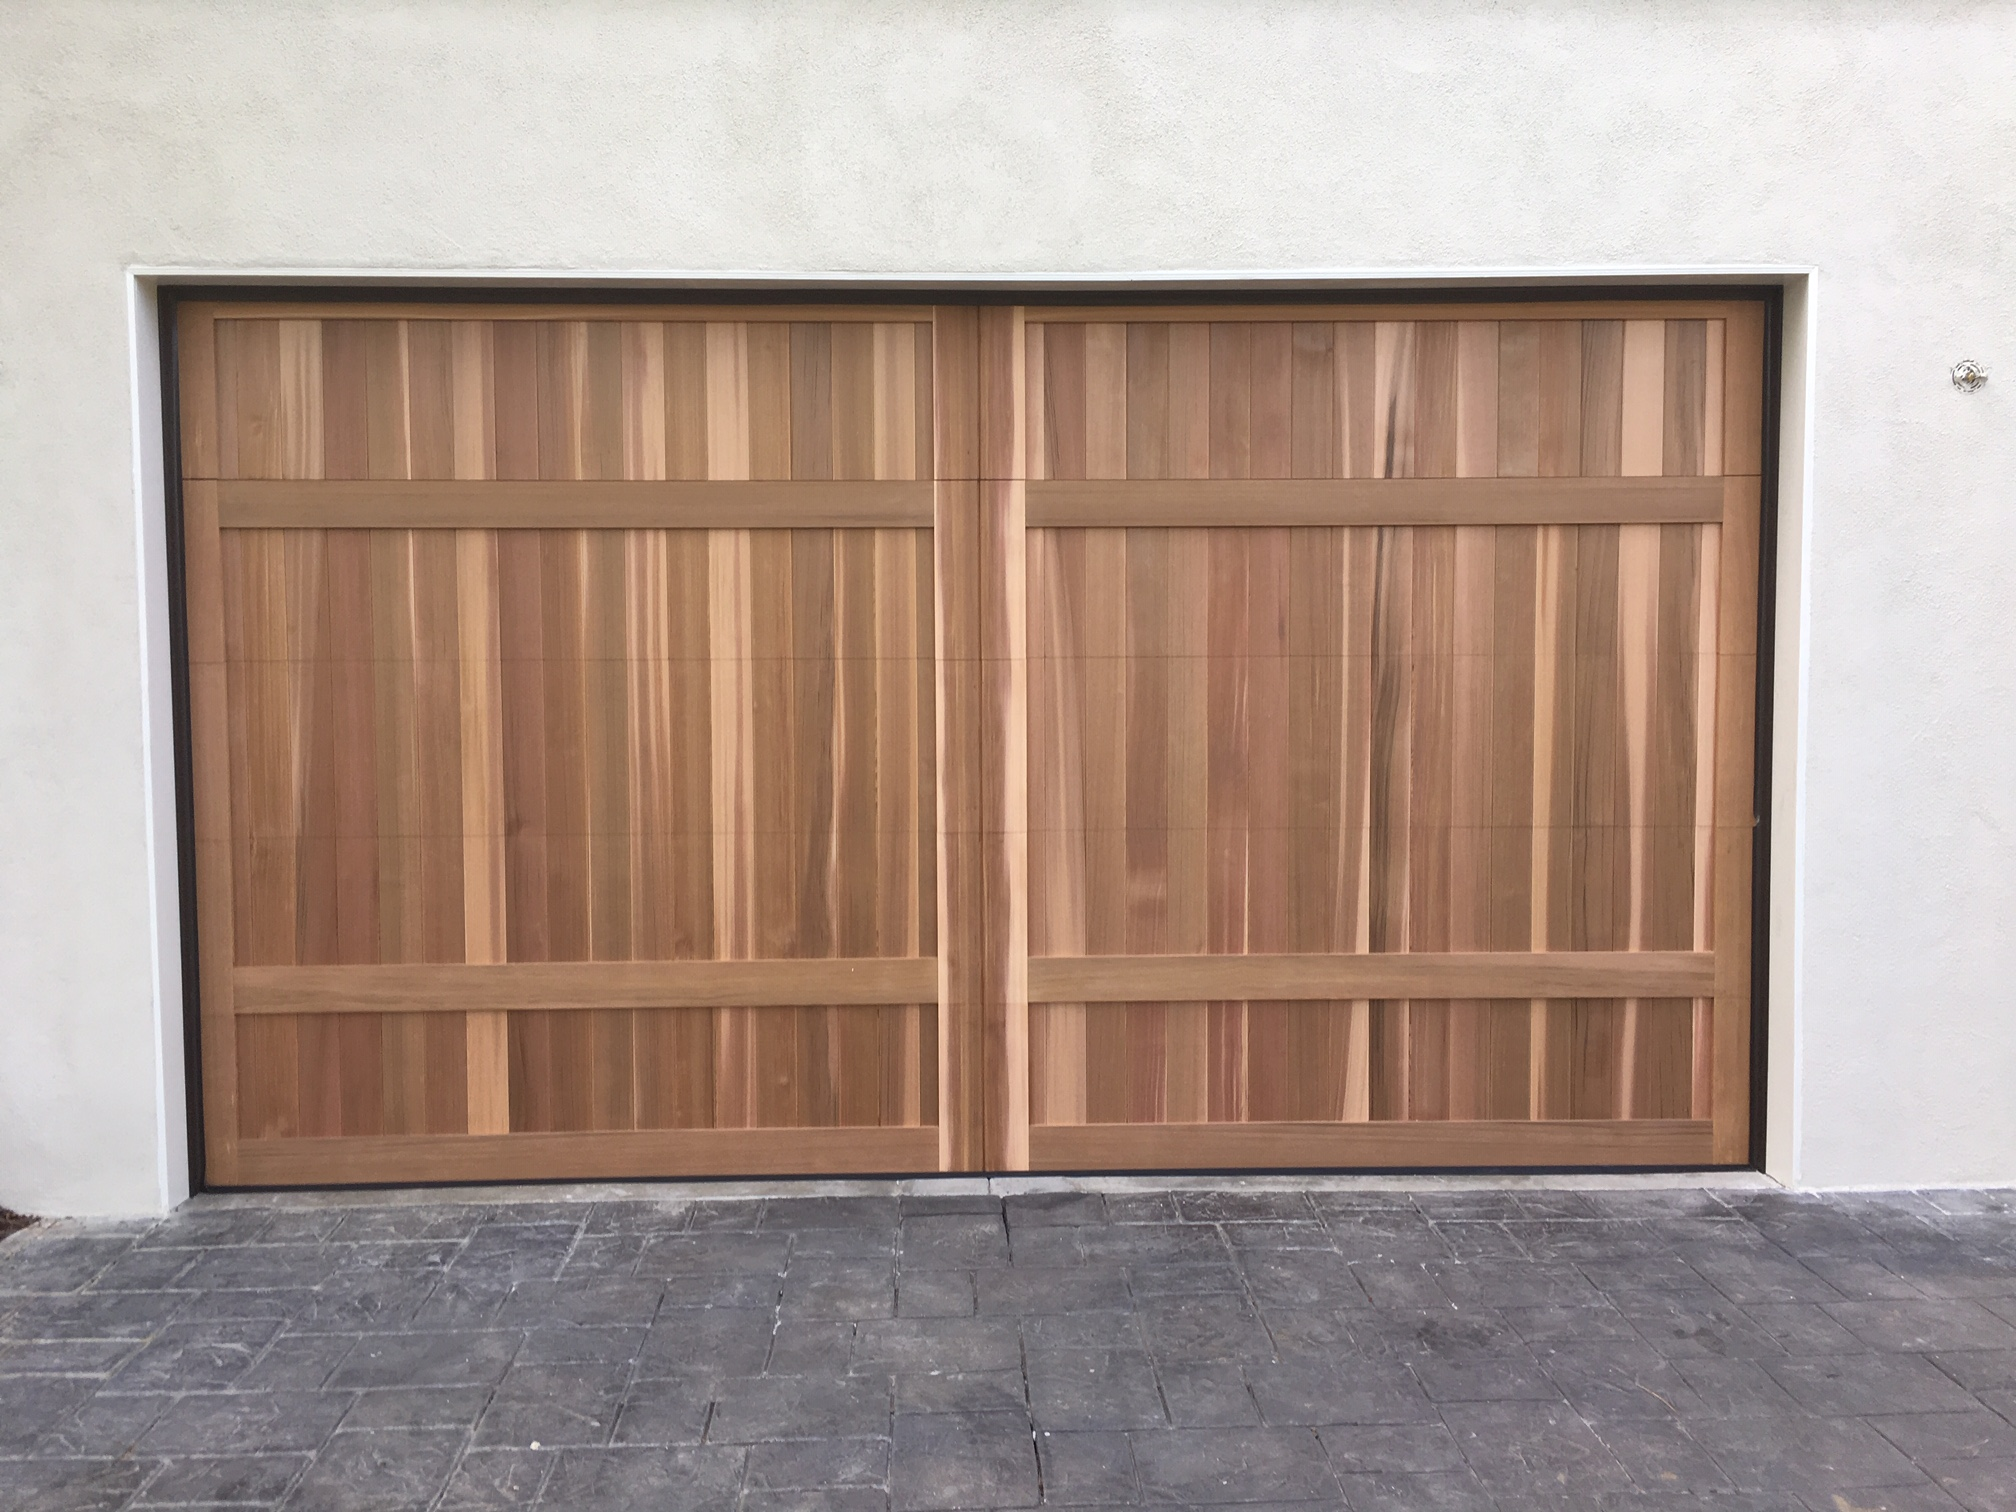 Craftsman Garage Door in Thousand Oaks California